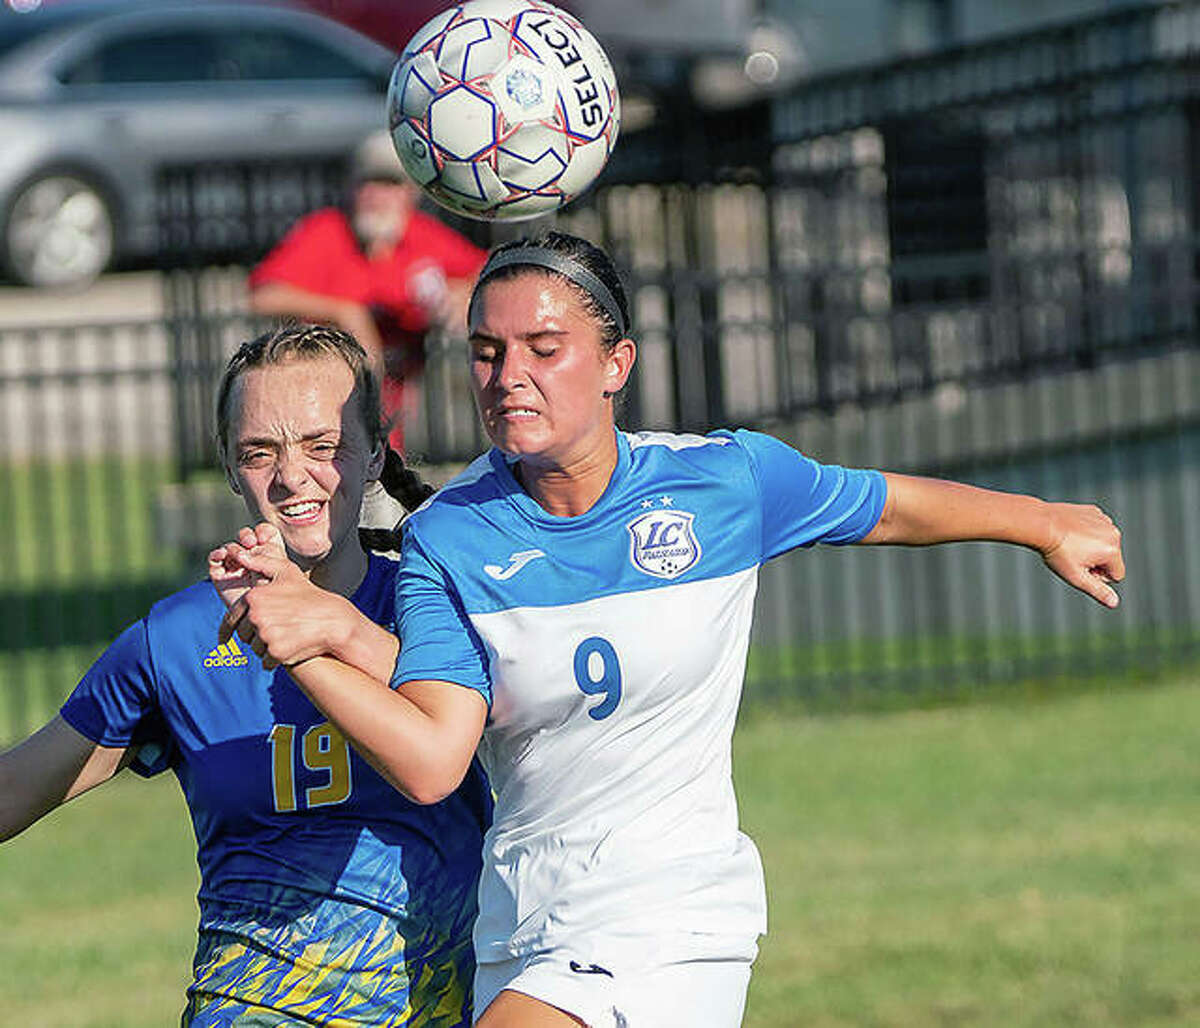 Lewis and Clark's Paige Bauer (9) and Illinois Central College's Kaylee Kleist battle during action Tuesday in Godfrey. Illinois Central beat LCCC 2-0 Saturday in East Peoria after Lewis and Clark won Tuesday's game 2-1.